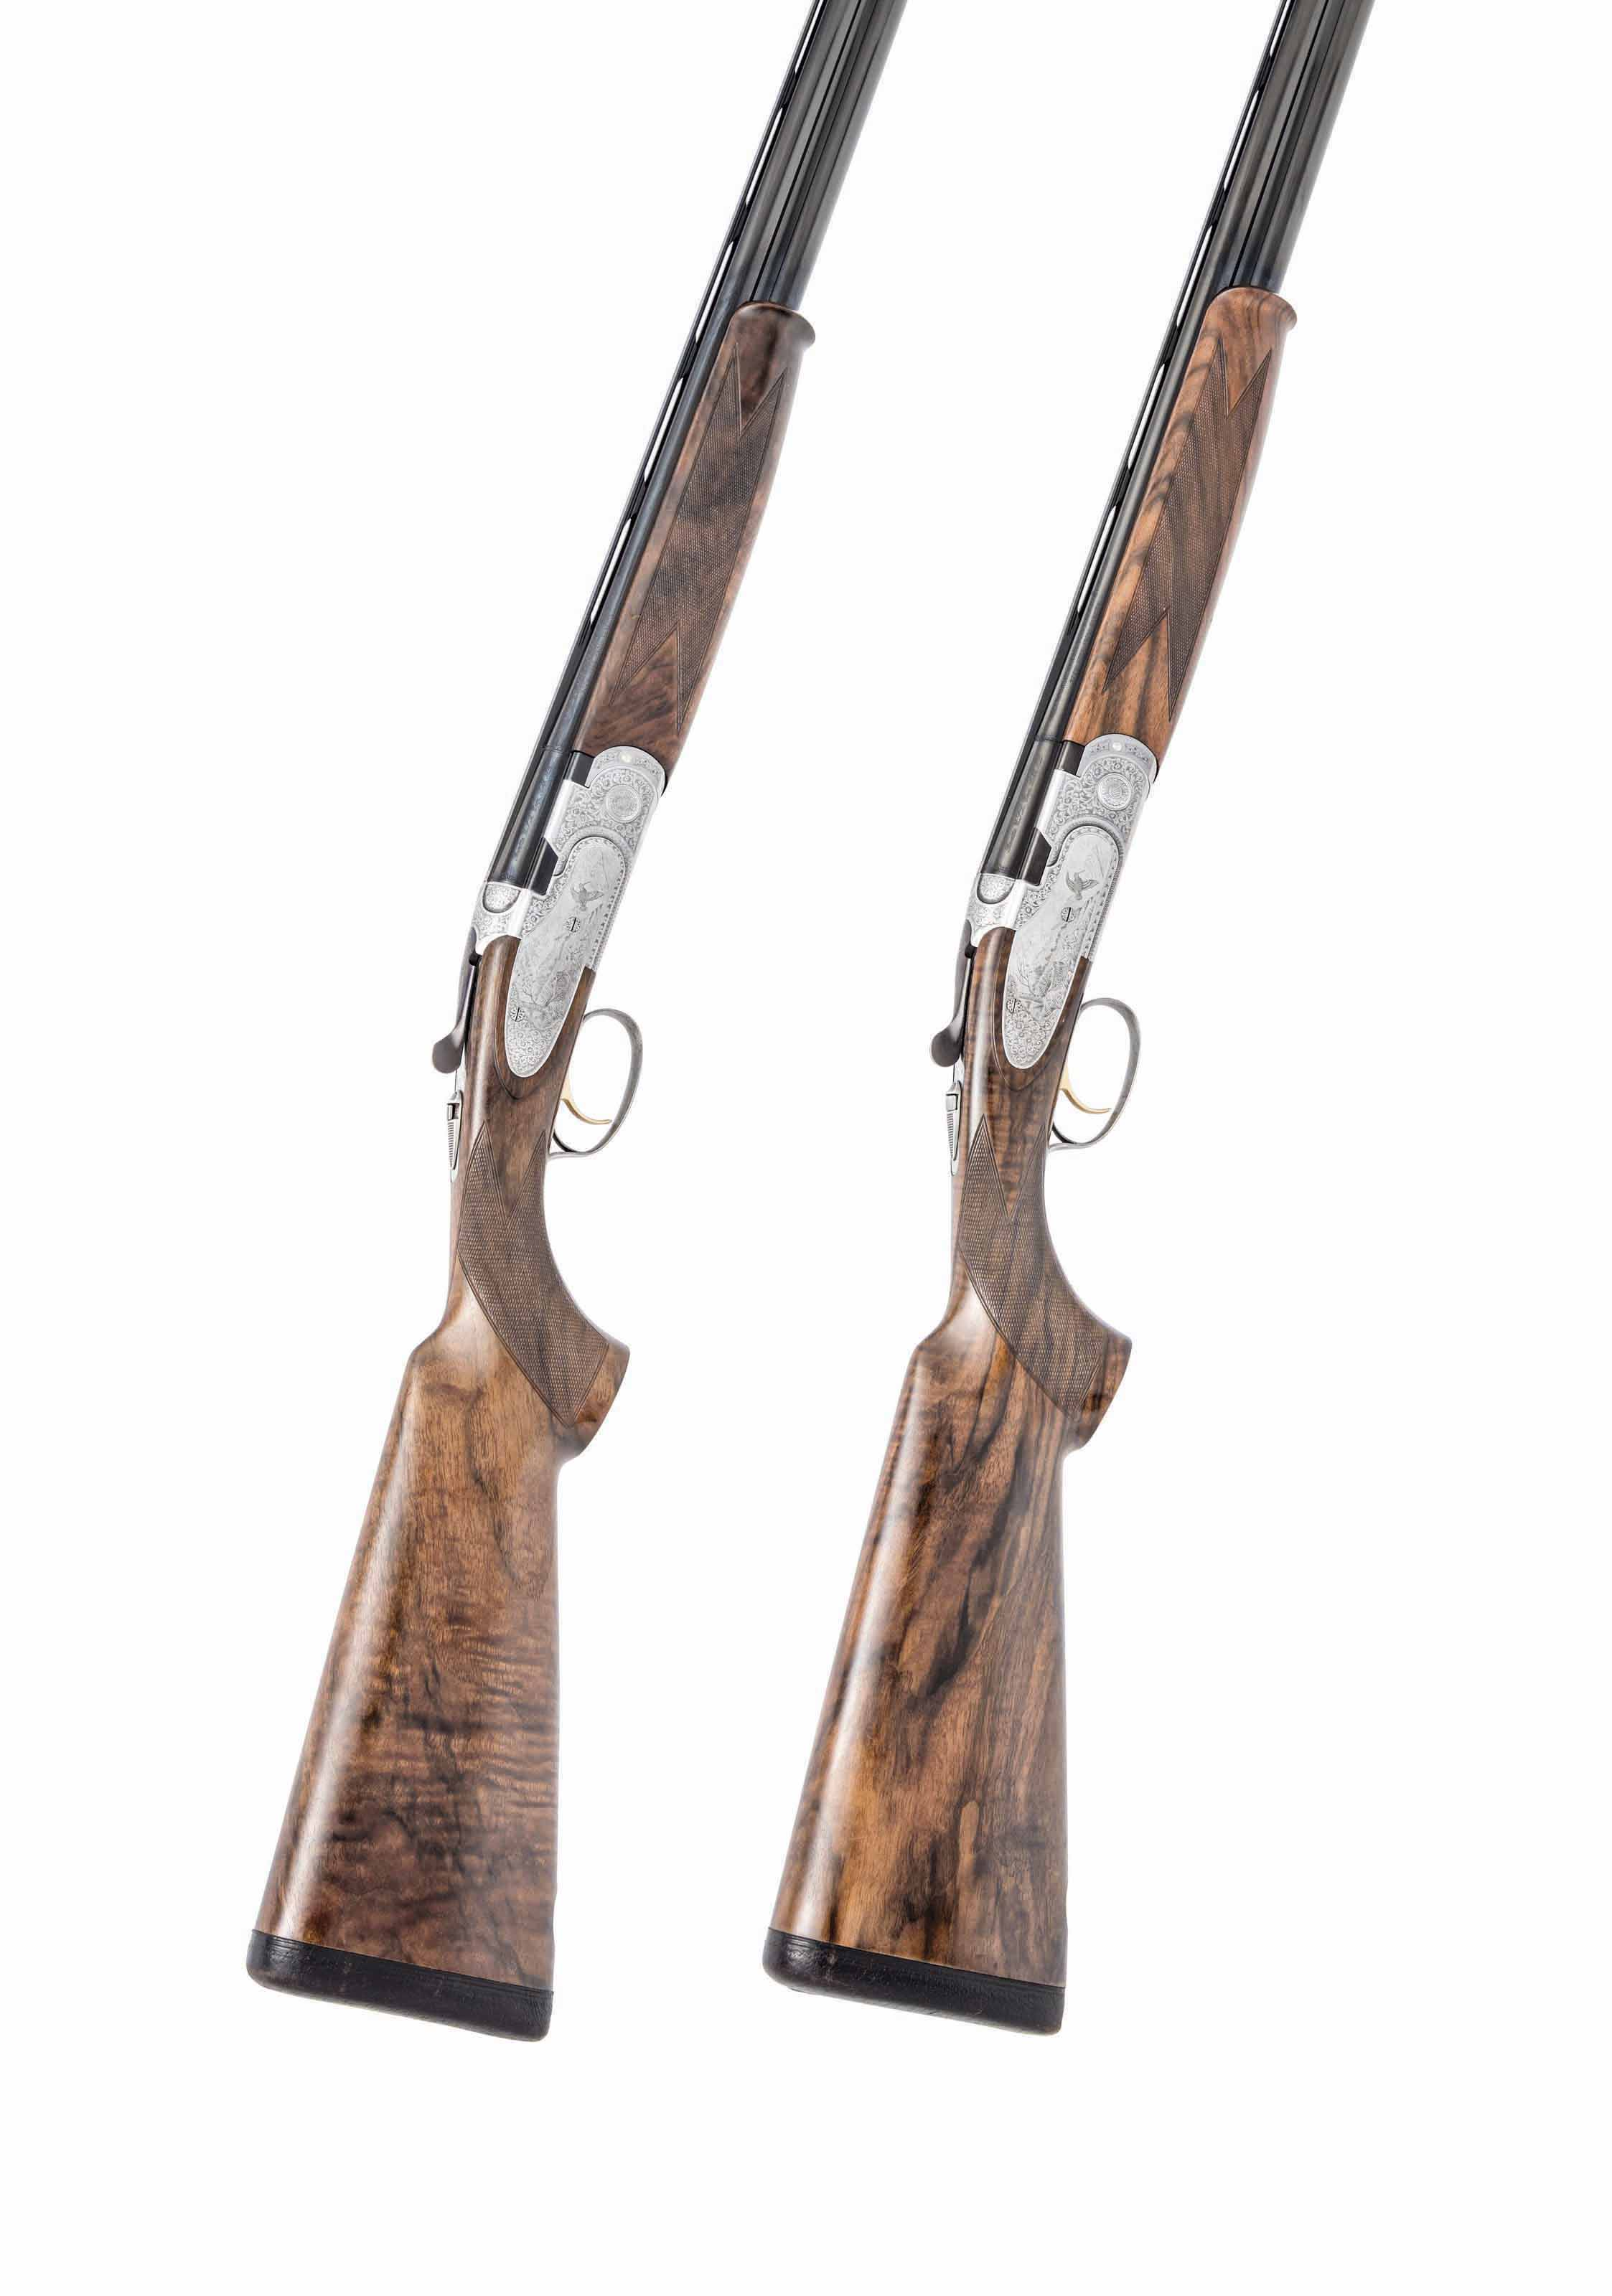 A PAIR OF BOTTEGA C. GIOVANELLI ENGRAVED 20-BORE S687 EELL 'DIAMOND PIGEON' SINGLE-TRIGGER SIDE-PLATED OVER-AND-UNDER EJECTORS